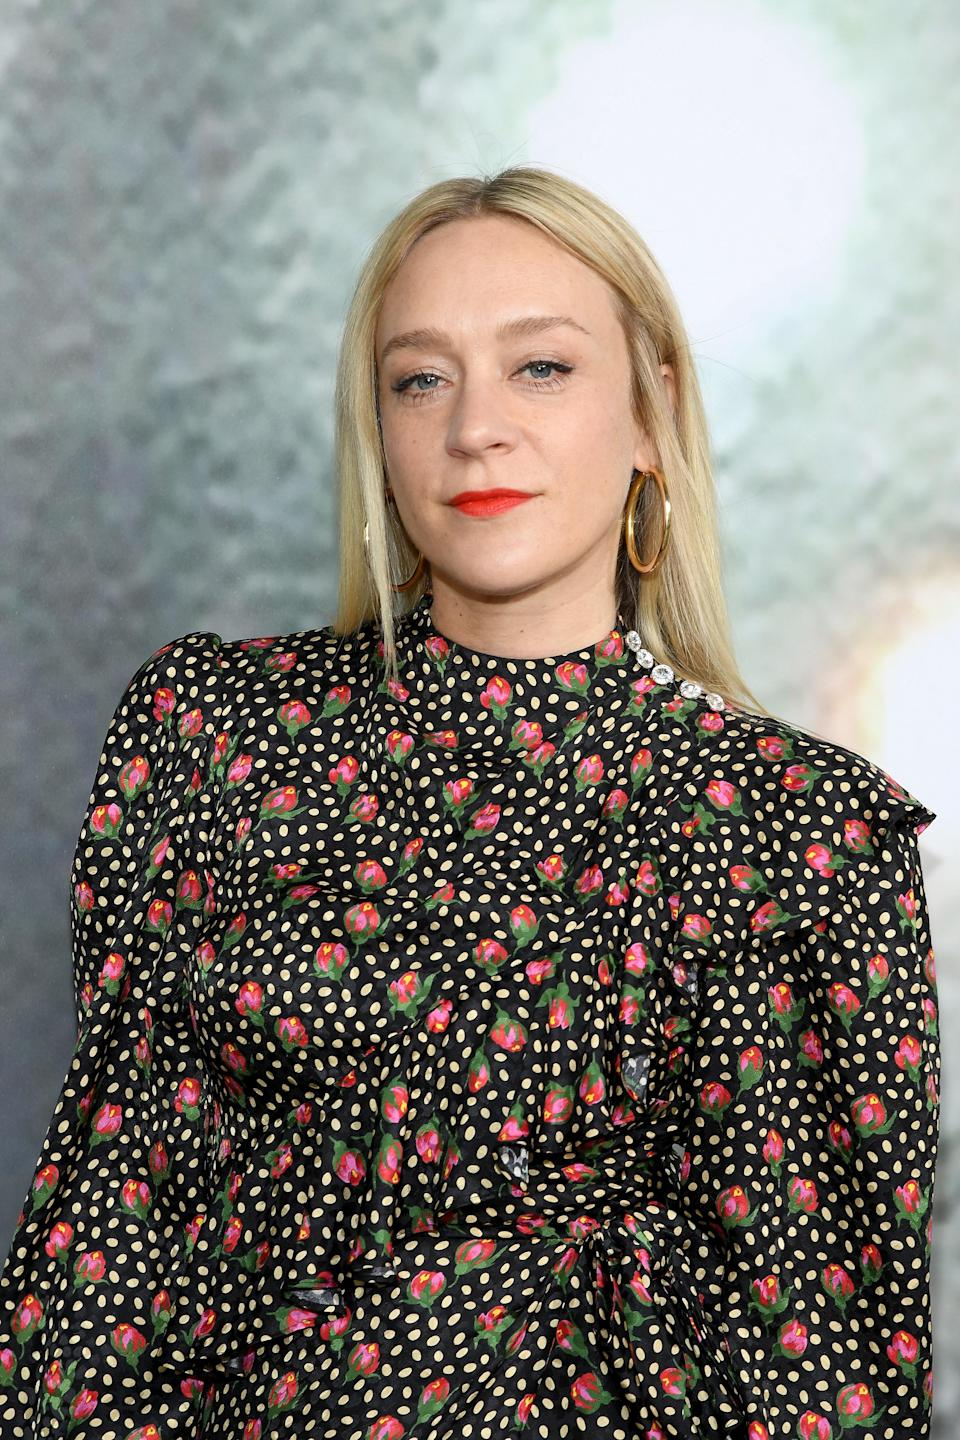 """Brown calls Chloë Sevigny's soft blonde """"a very pale, creamy blond that reflects the moonlight."""" It's not quite as icy as platinum but is still very light and bright. Brown says to ask for a base with neutral to cool tones with almost white highlights to brighten it up."""